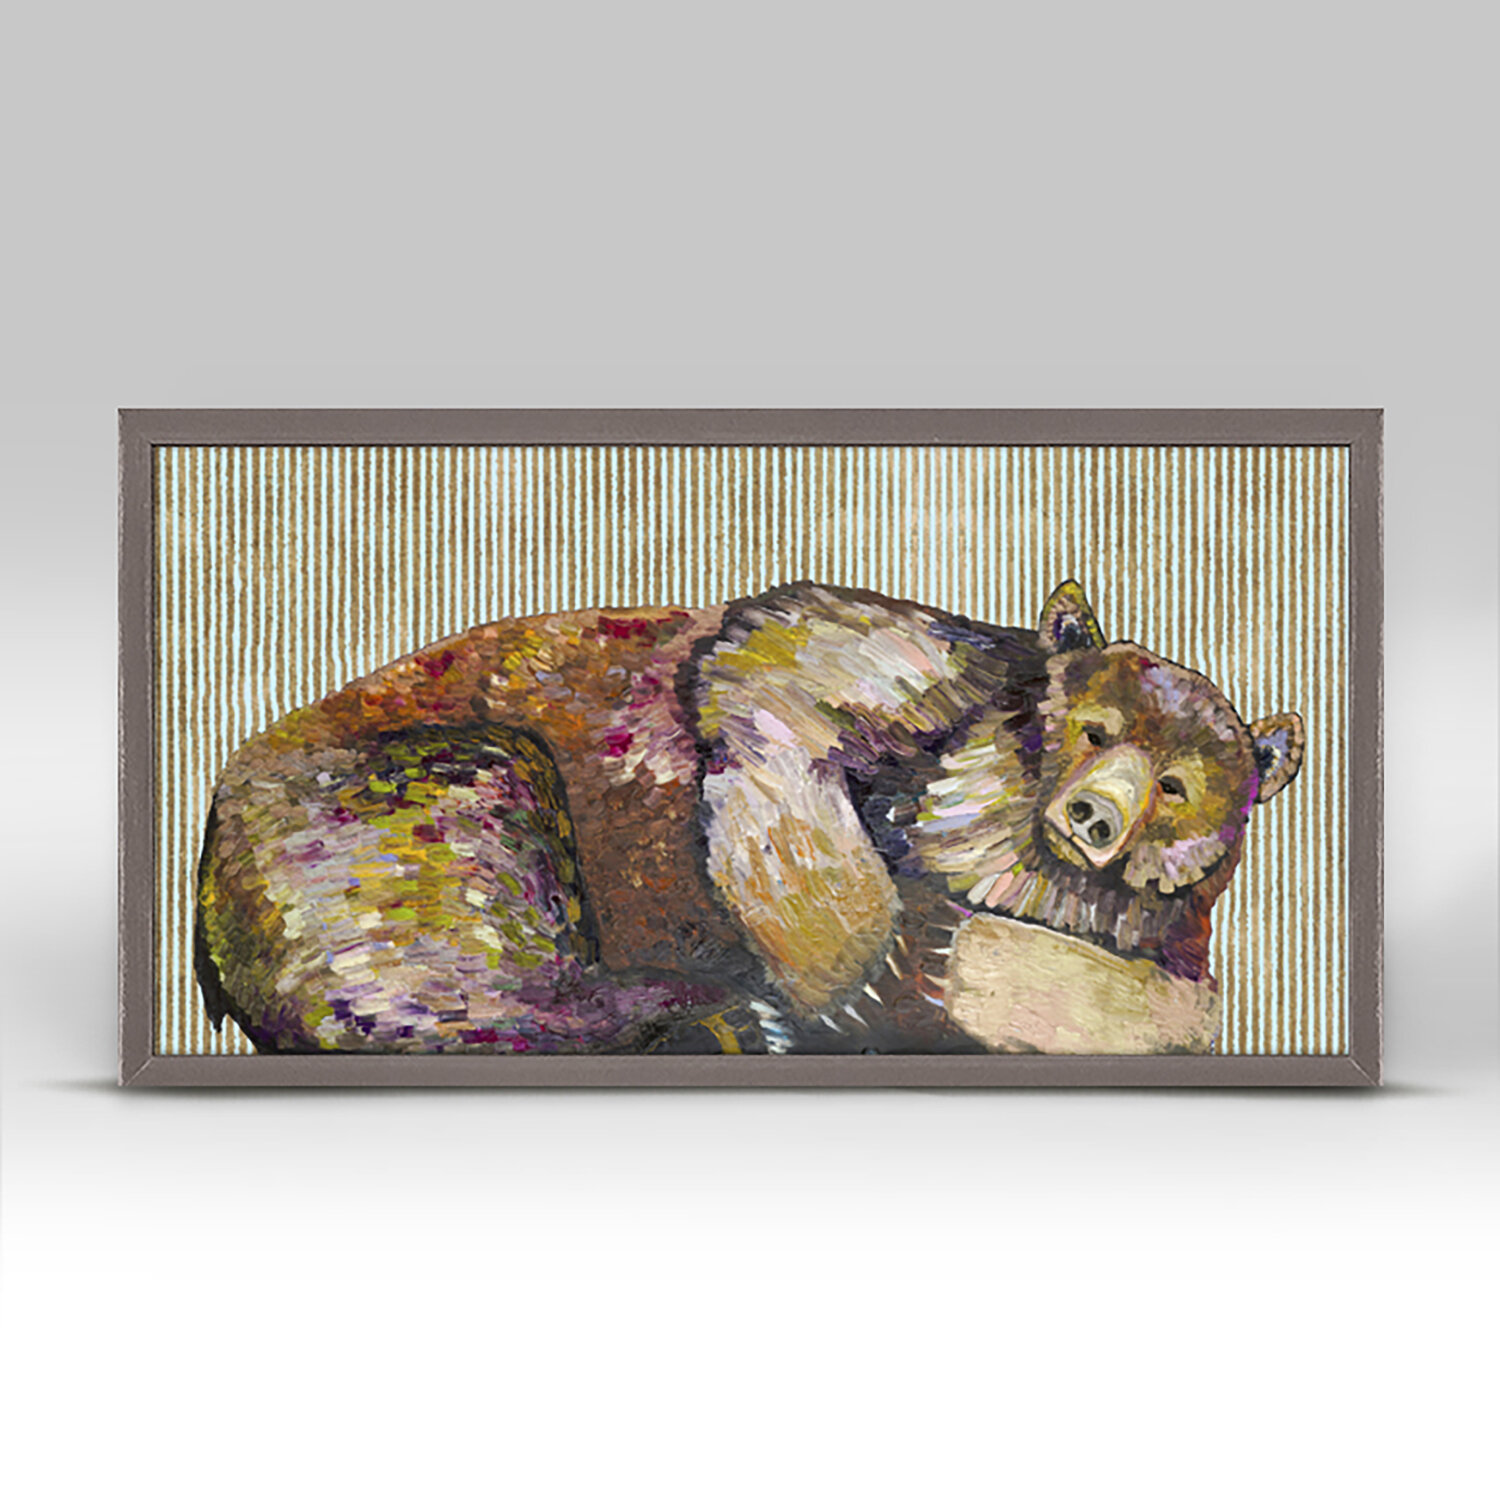 Greenbox Art Grizzly Bear Dreams With Gold Stripes Picture Frame Print On Canvas Wayfair